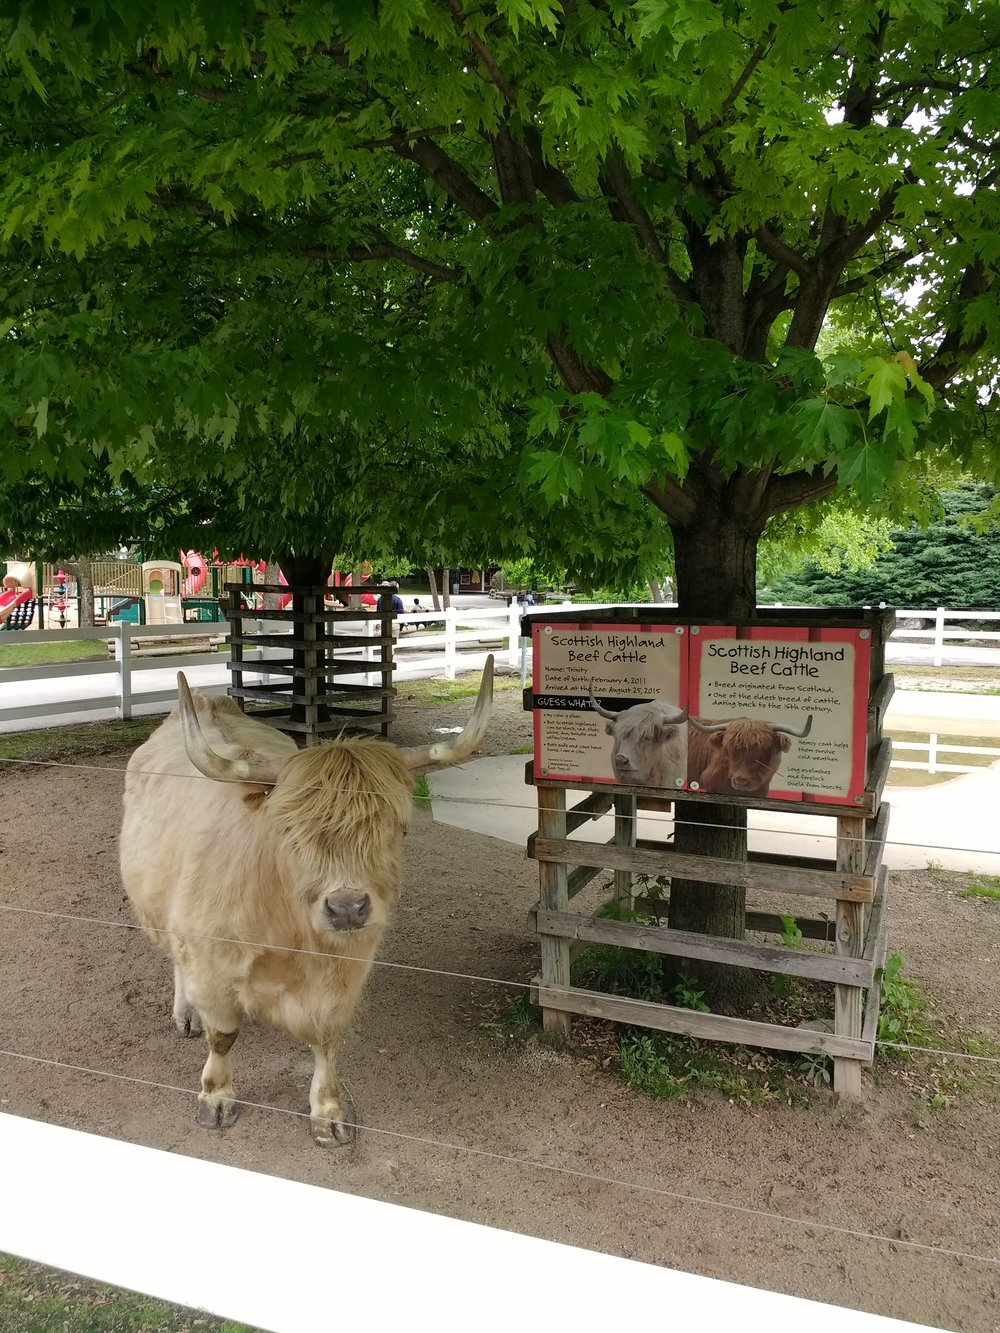 This Scottish Highland Beef Cattle at the Milwaukee County Zoo was happy to see our system working properly.